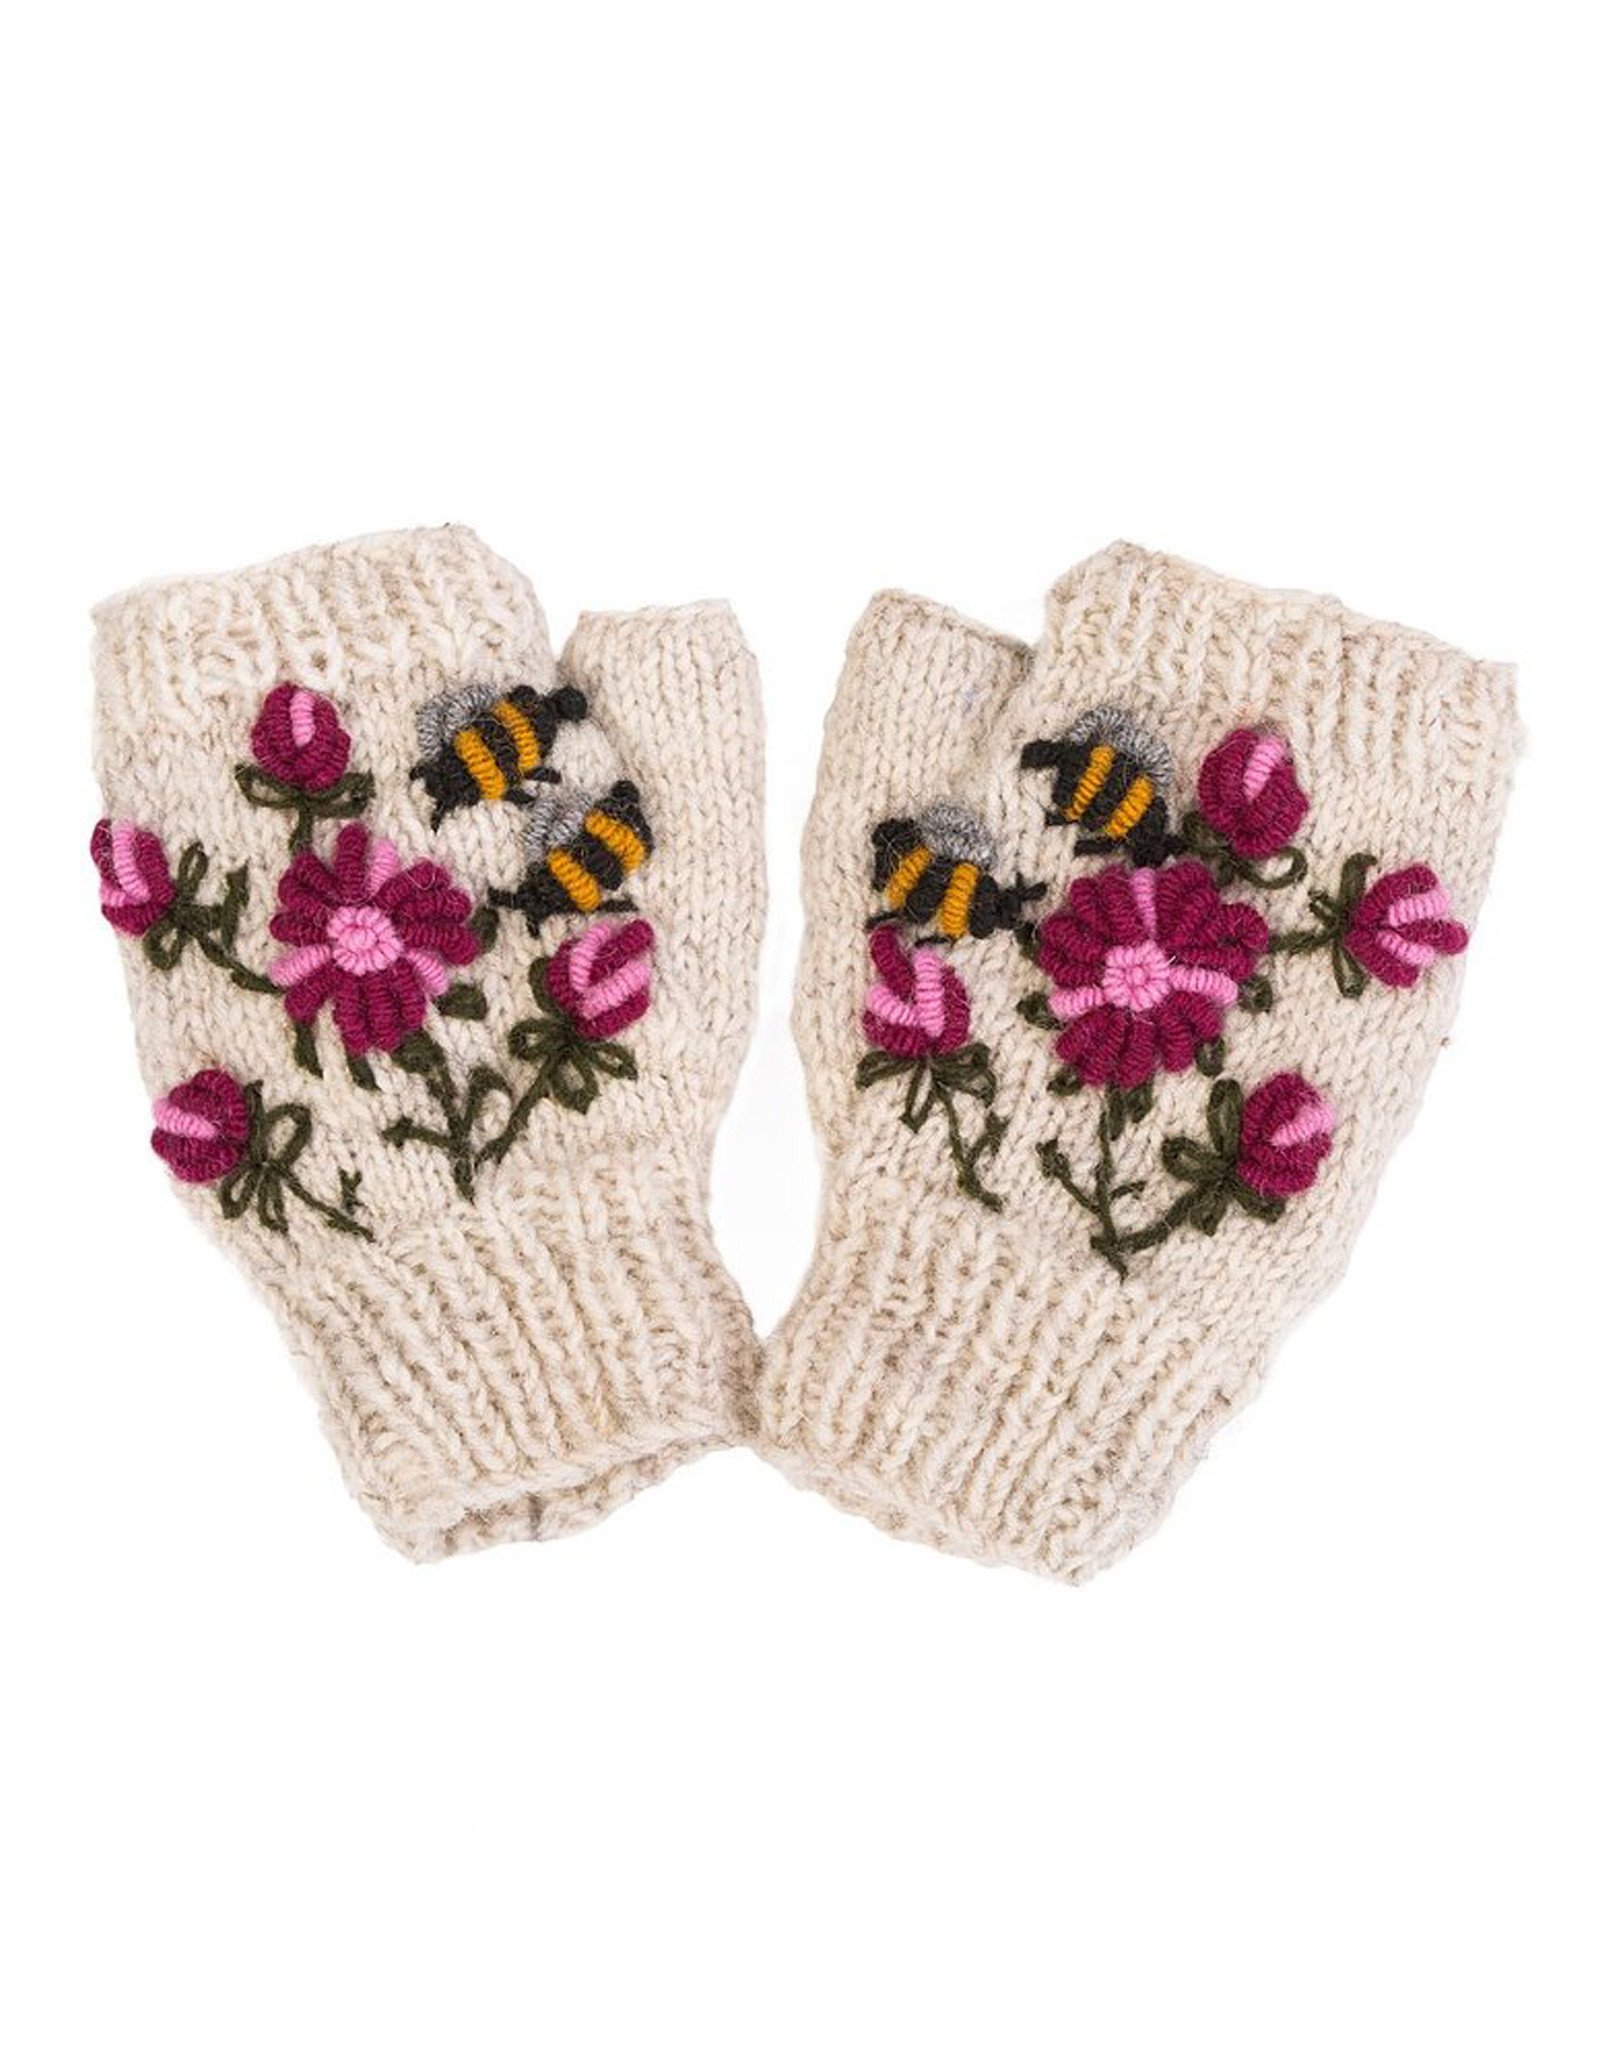 Hand Warmers with Embroidered Bees & Flowers